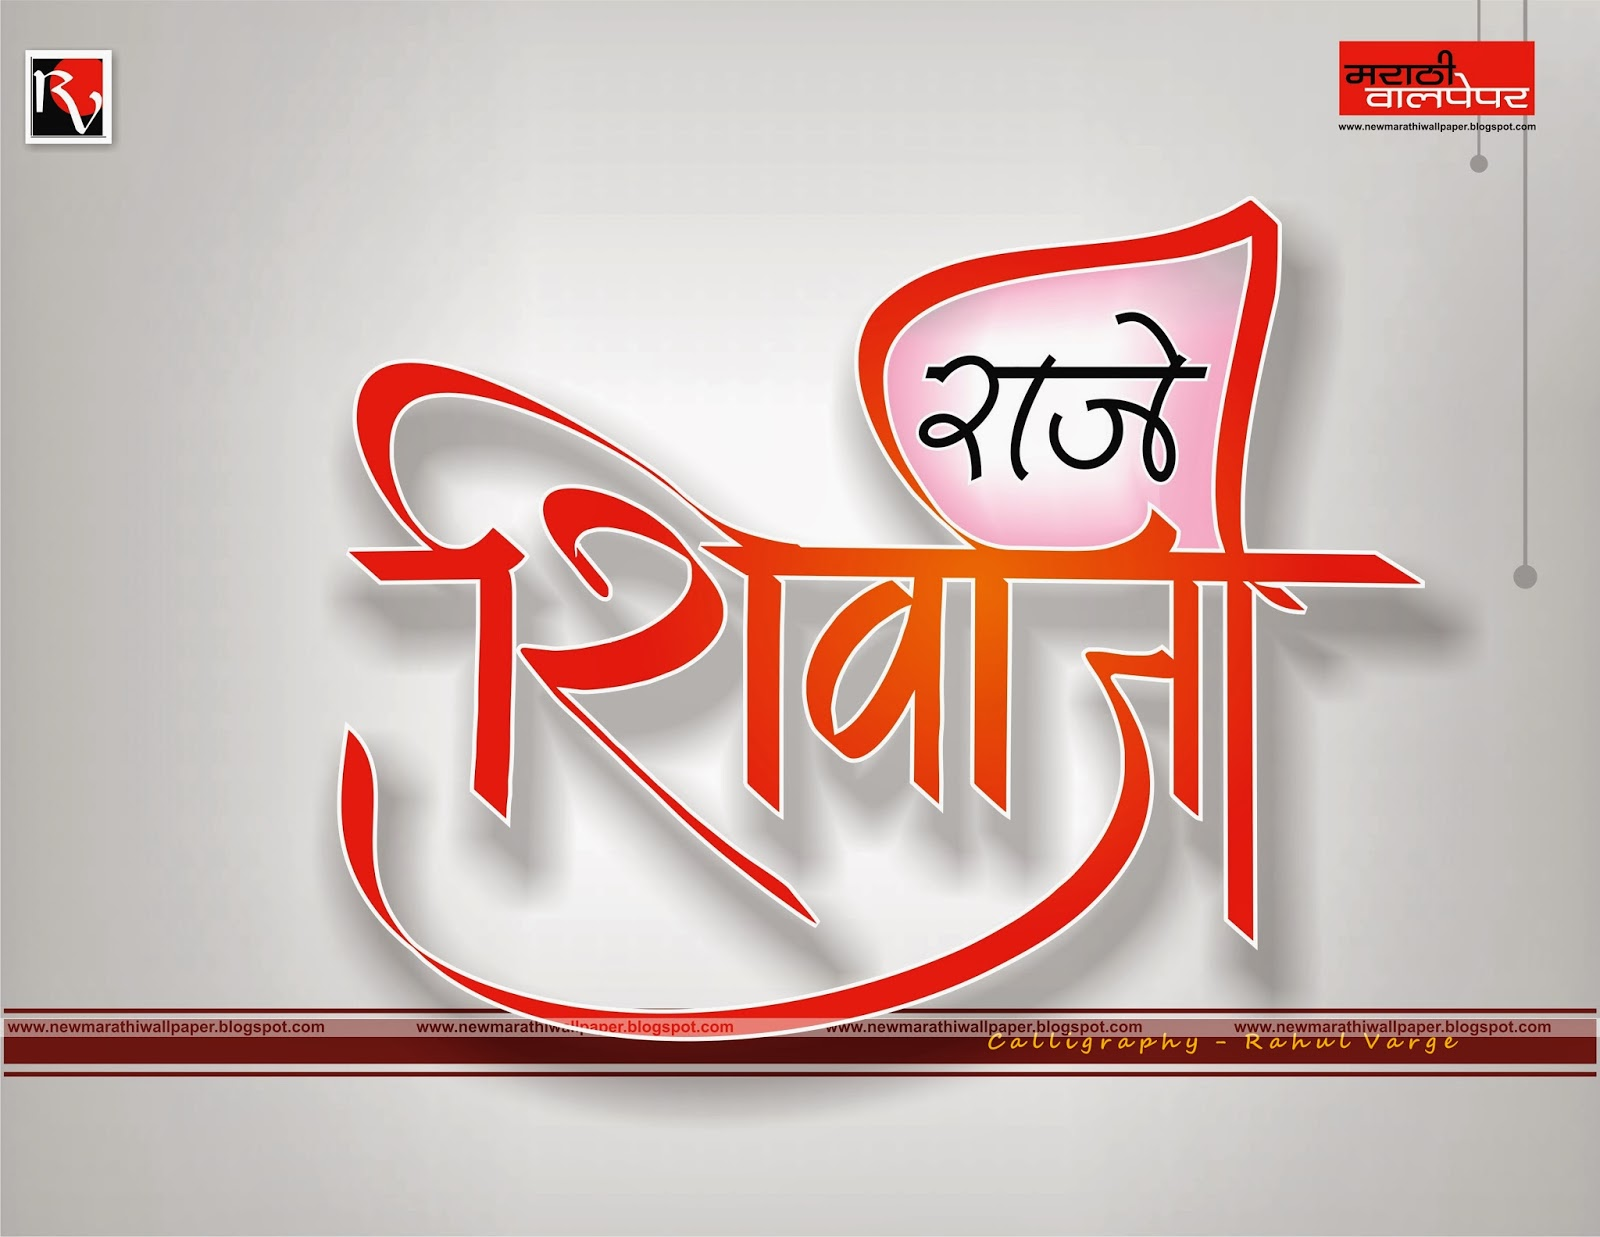 Raje shivaji new marathi wallpaper calligraphy